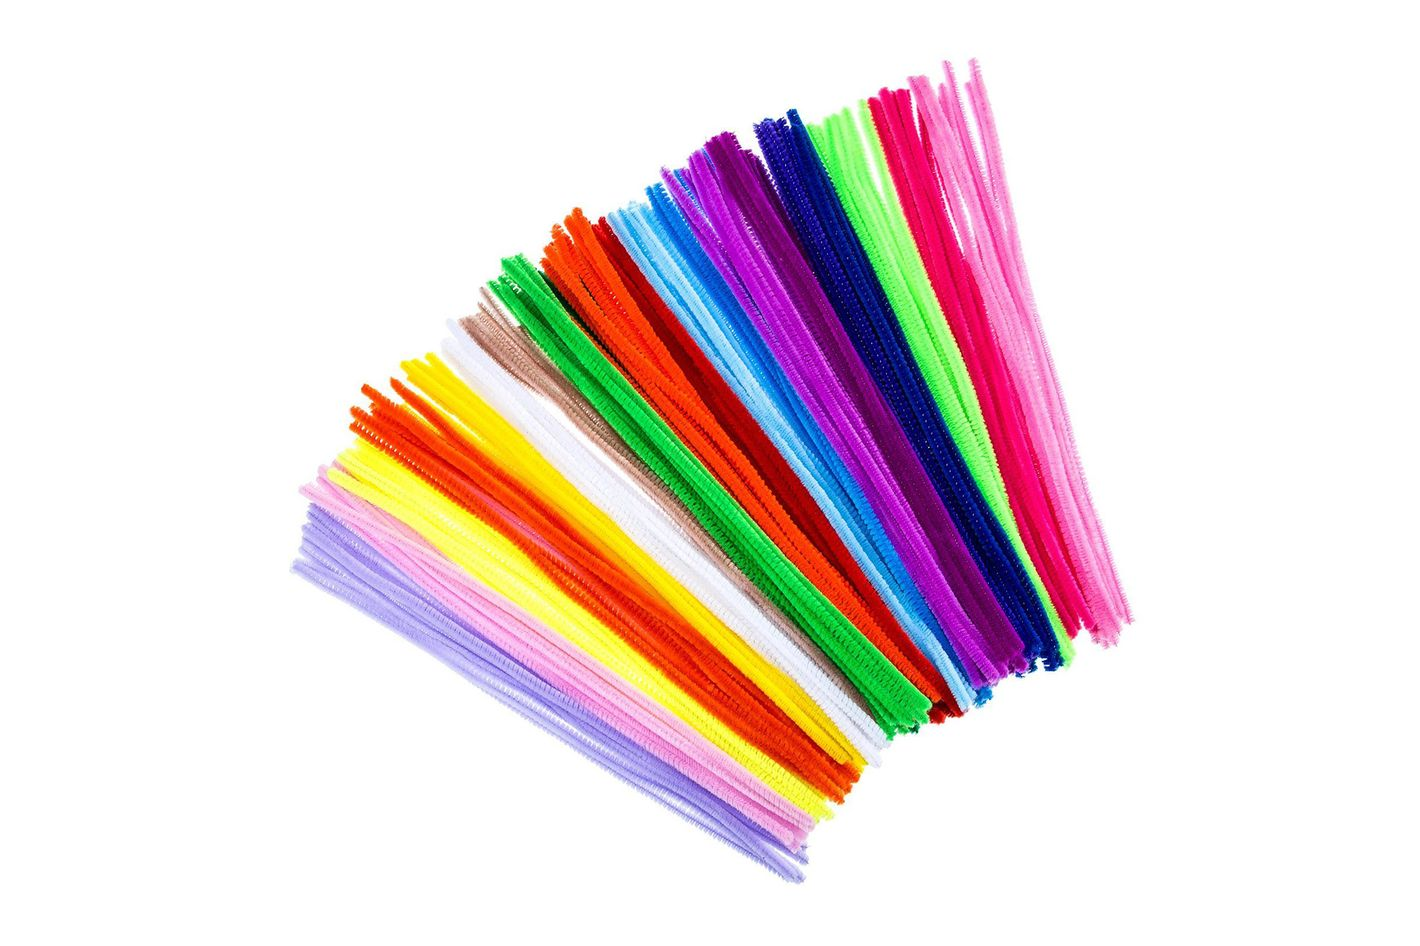 Creativity Street Chenille Stems/Pipe Cleaners — 100-Piece, Assorted Colors